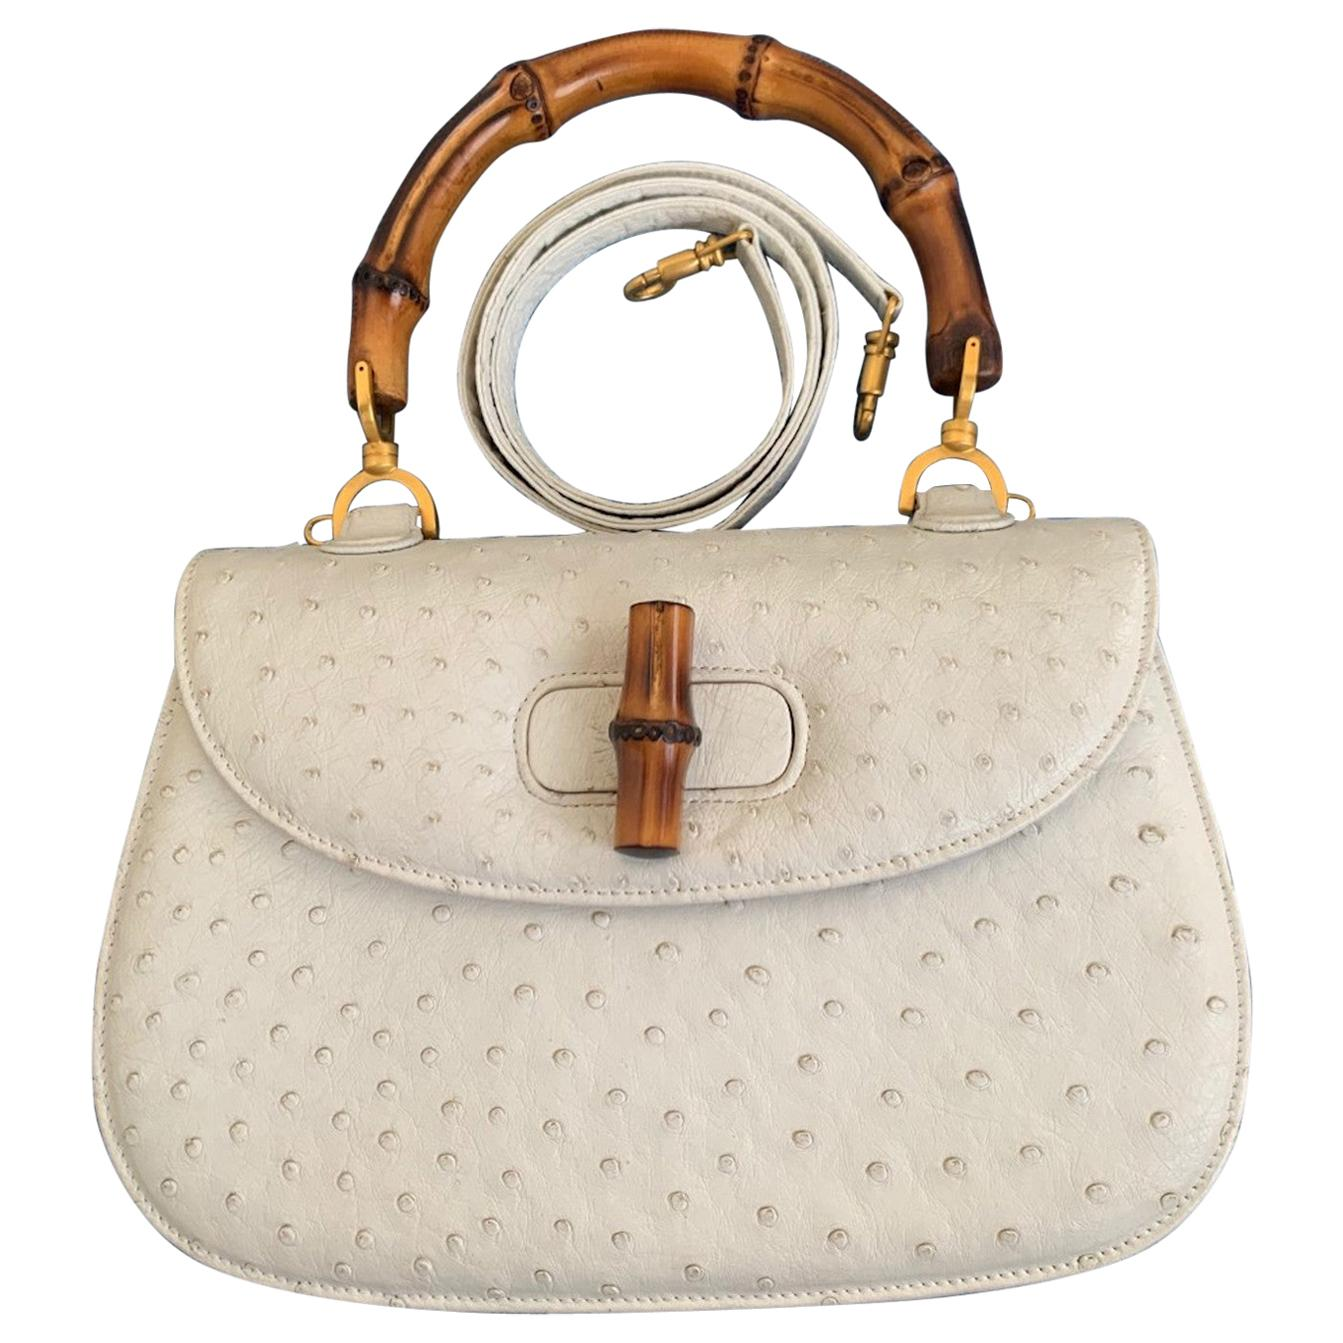 Gucci  Bamboo Top Handle Ostrich Leather Bag